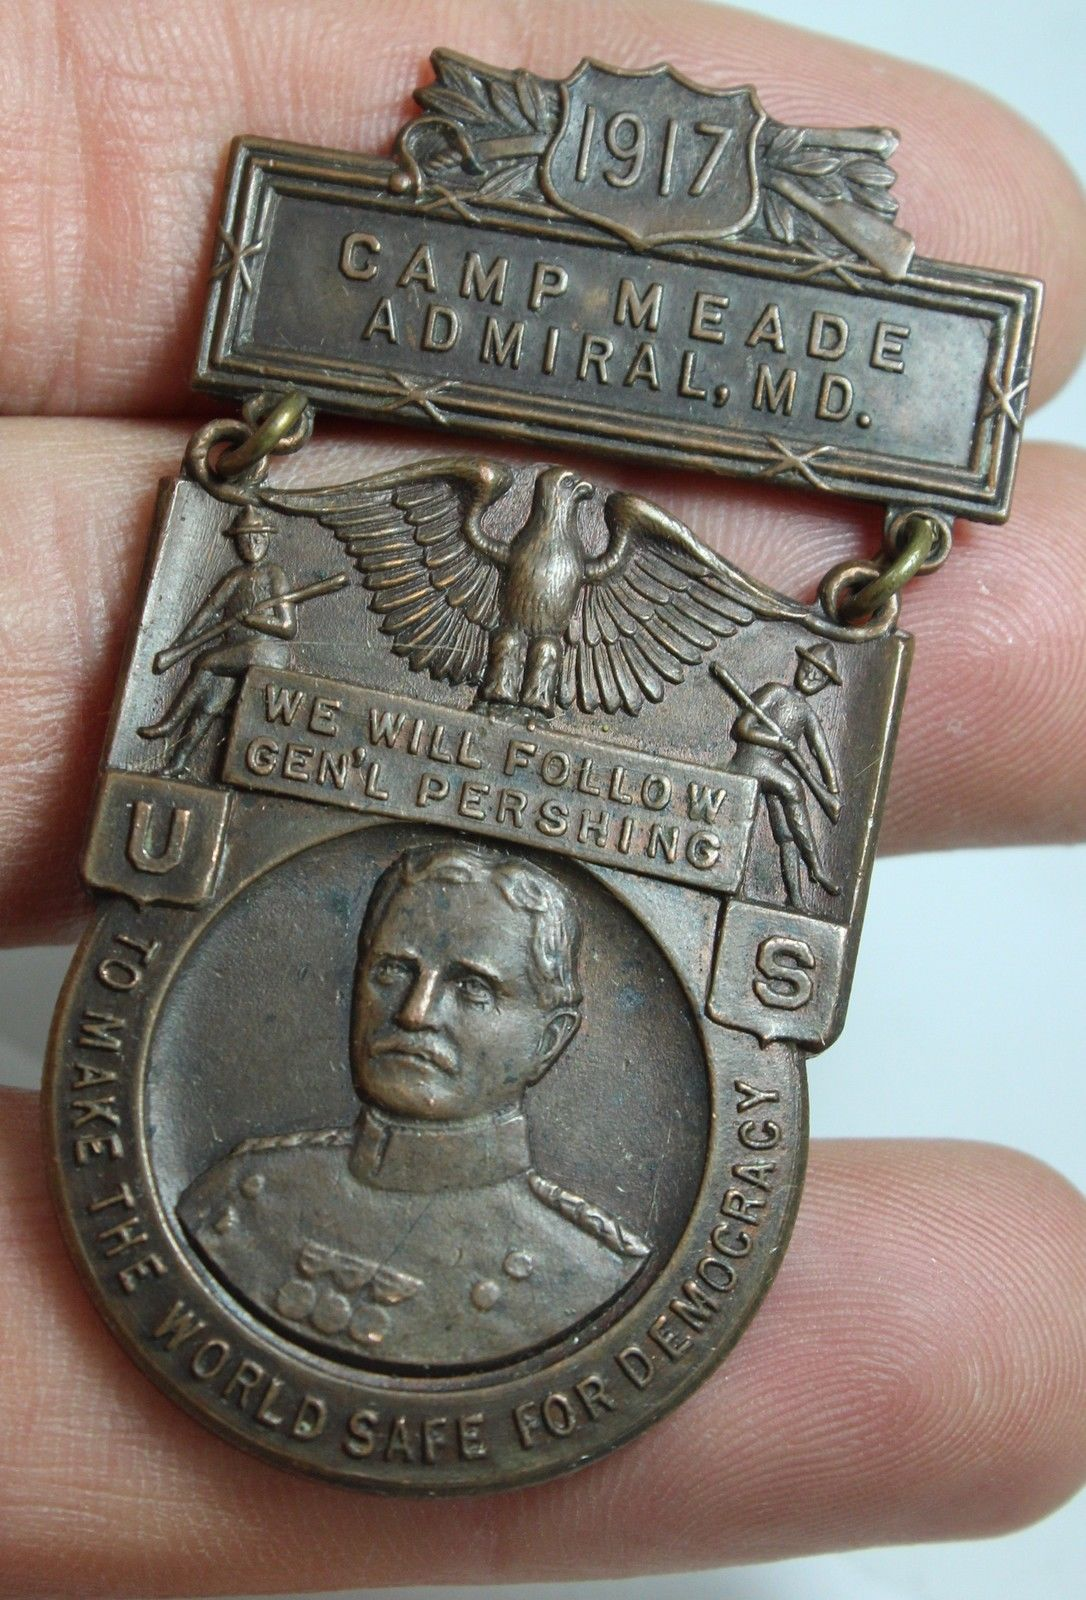 General Pershing Camp Meade 1917 medal - 1